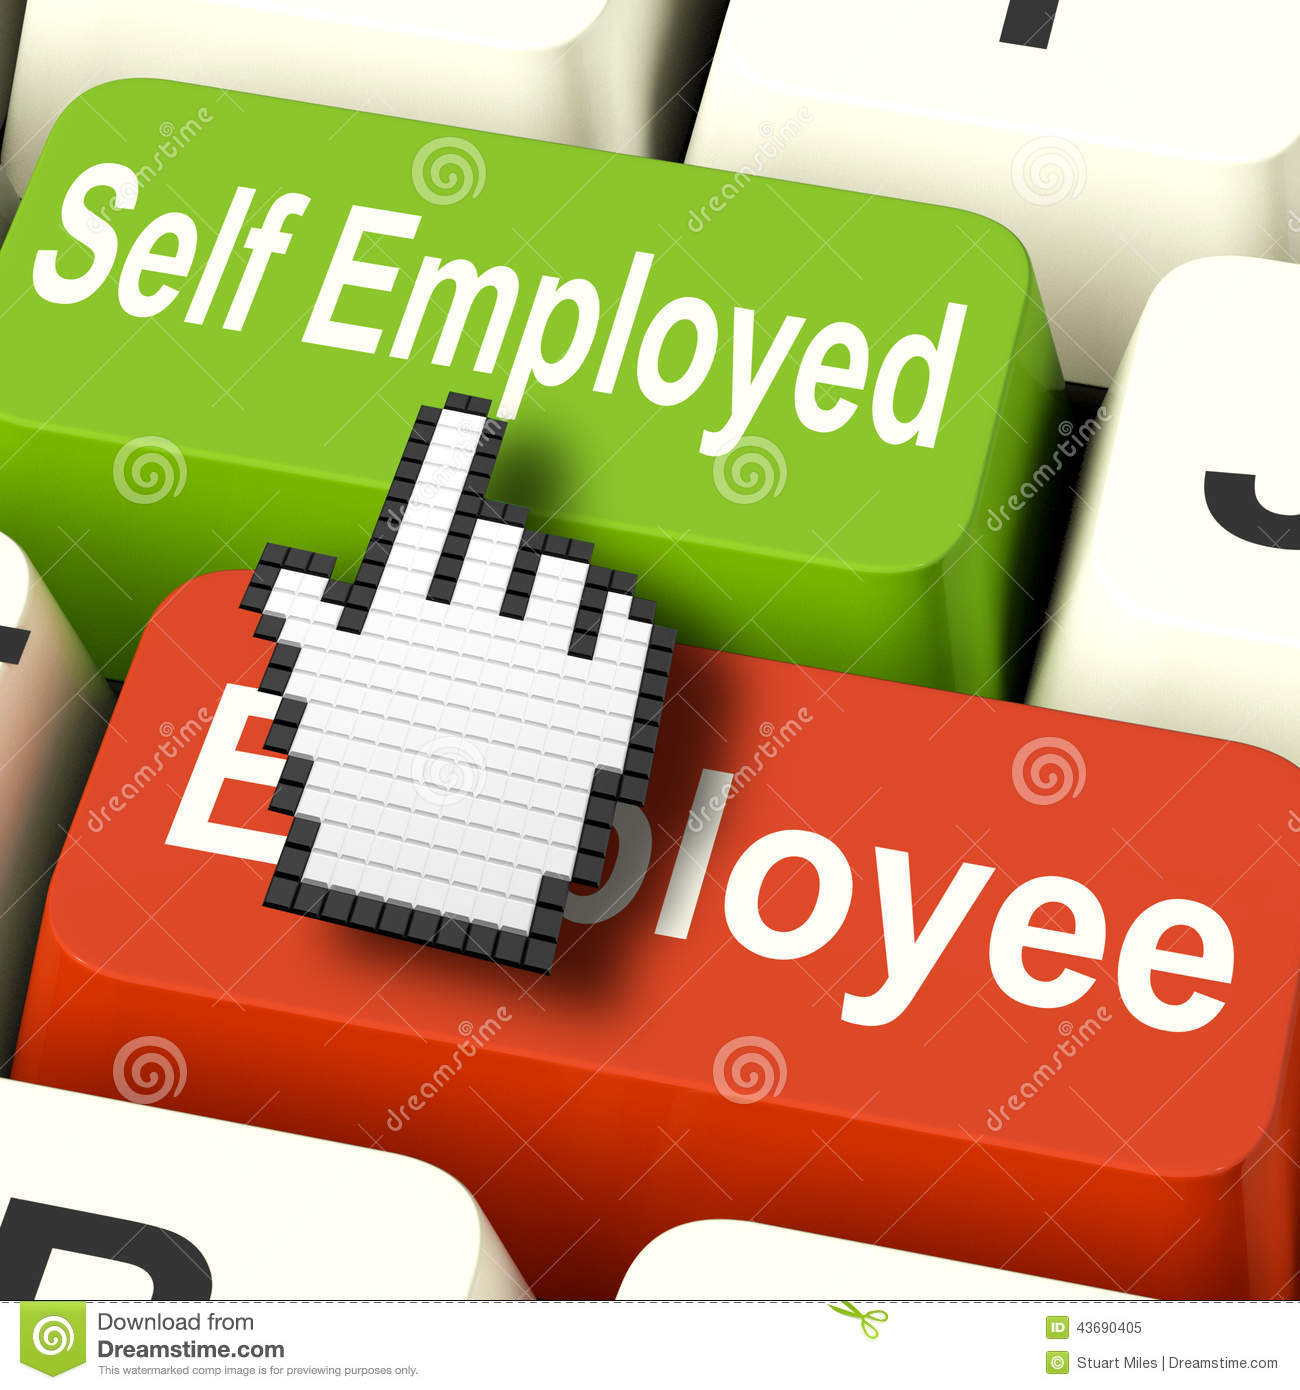 Self Employed Entrepreneur Job Occupation Stock Image.